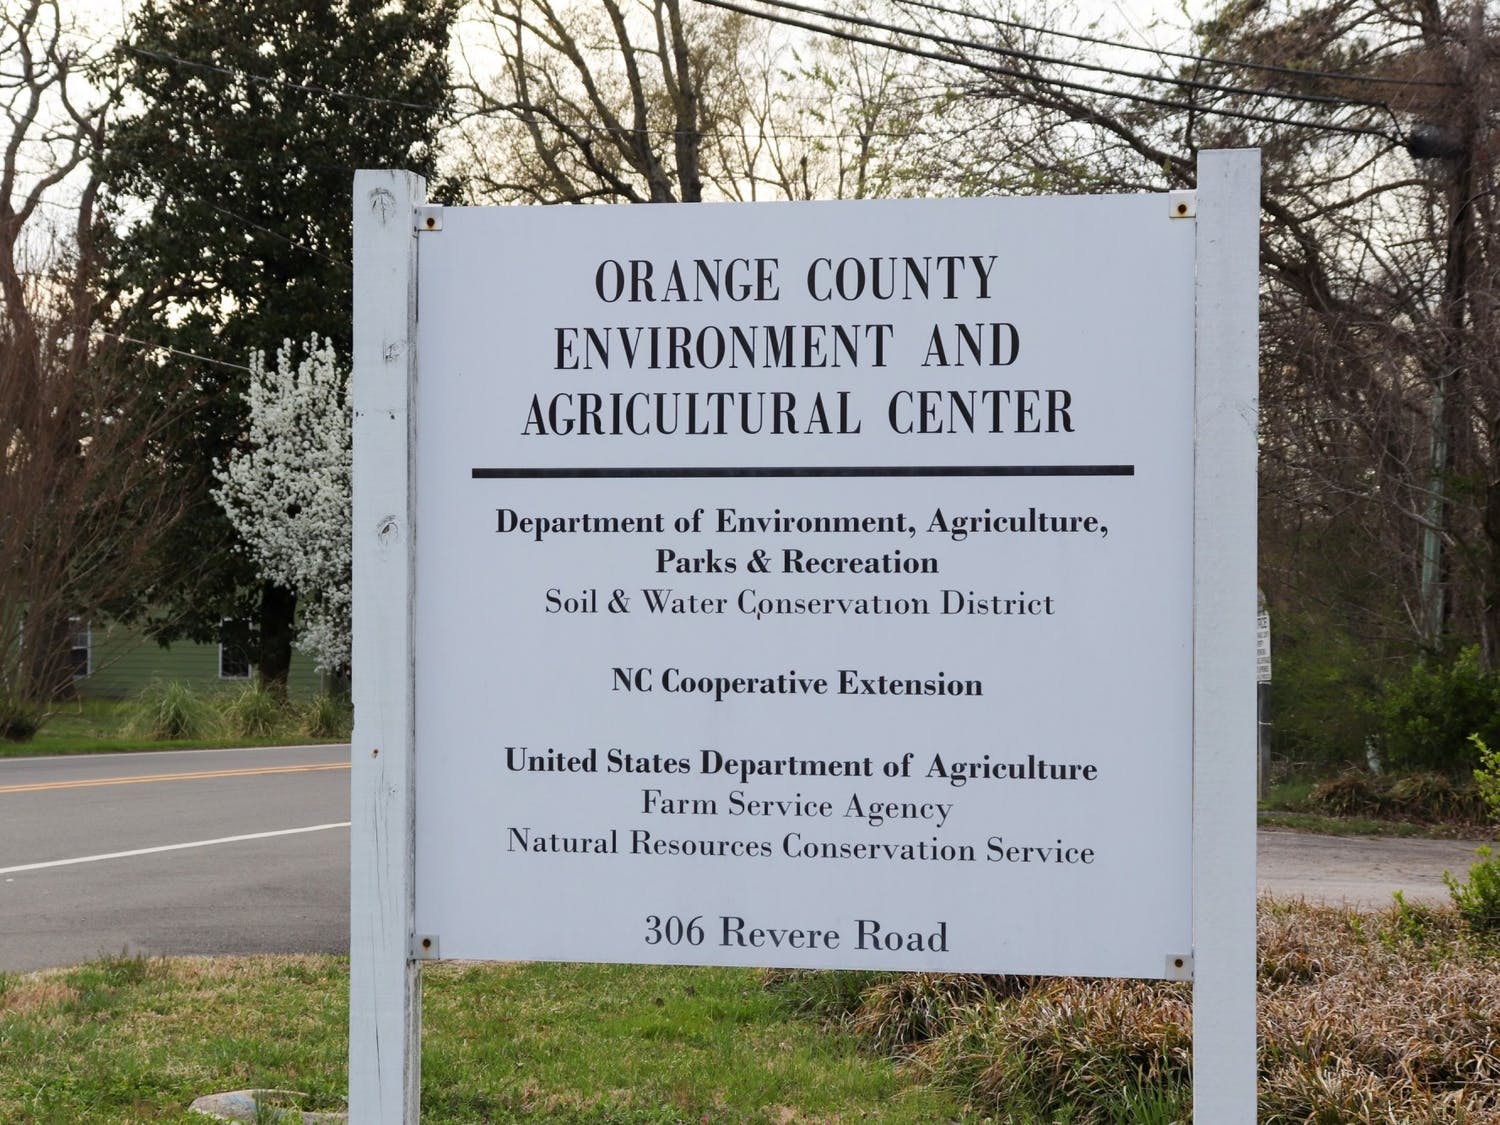 The new Orange County Environment and Agricultural Center will be renamed in honor of Bonnie Davis, a North Carolina cooperative extension agent who died in 2018.